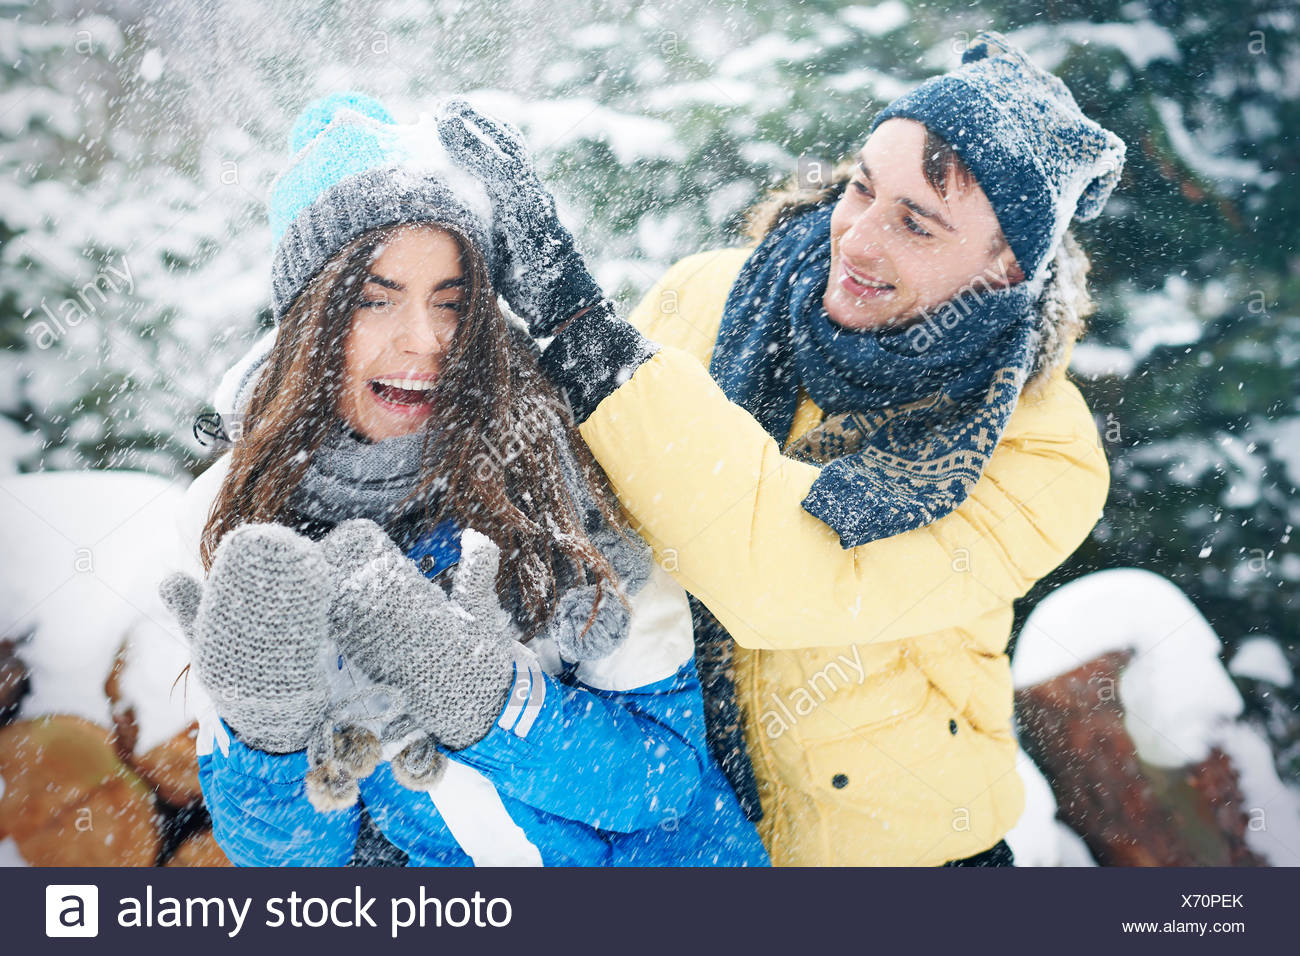 Snowball fight in winter make us happier. Debica, Poland - Stock Image